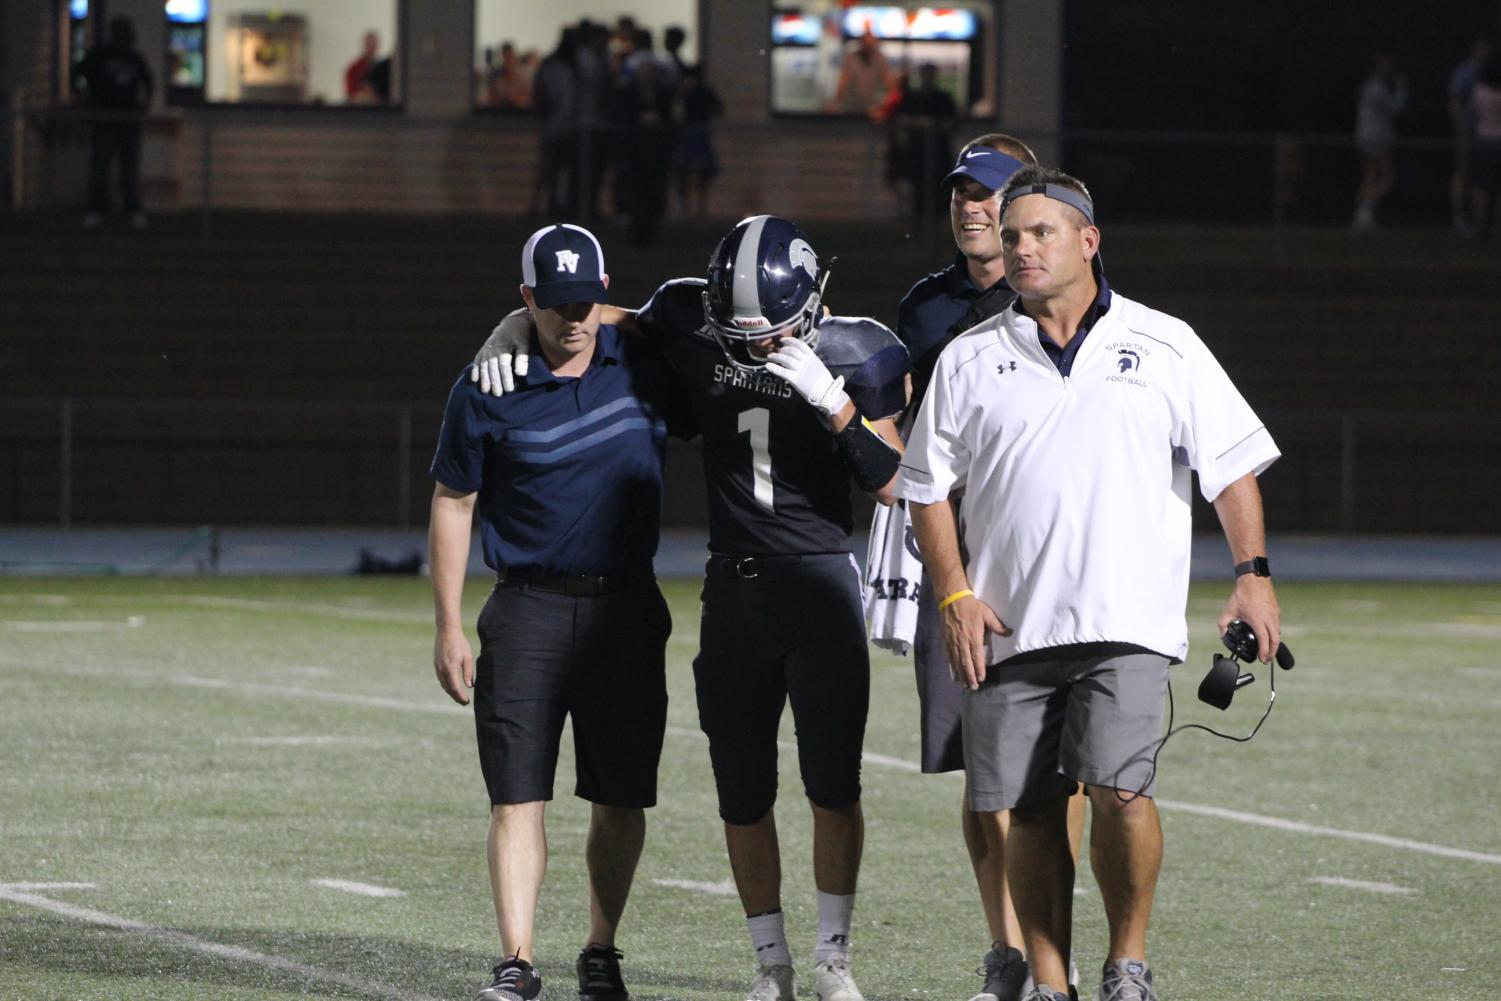 Athletic trainer Jason Veal helps an injured athlete off of the field.